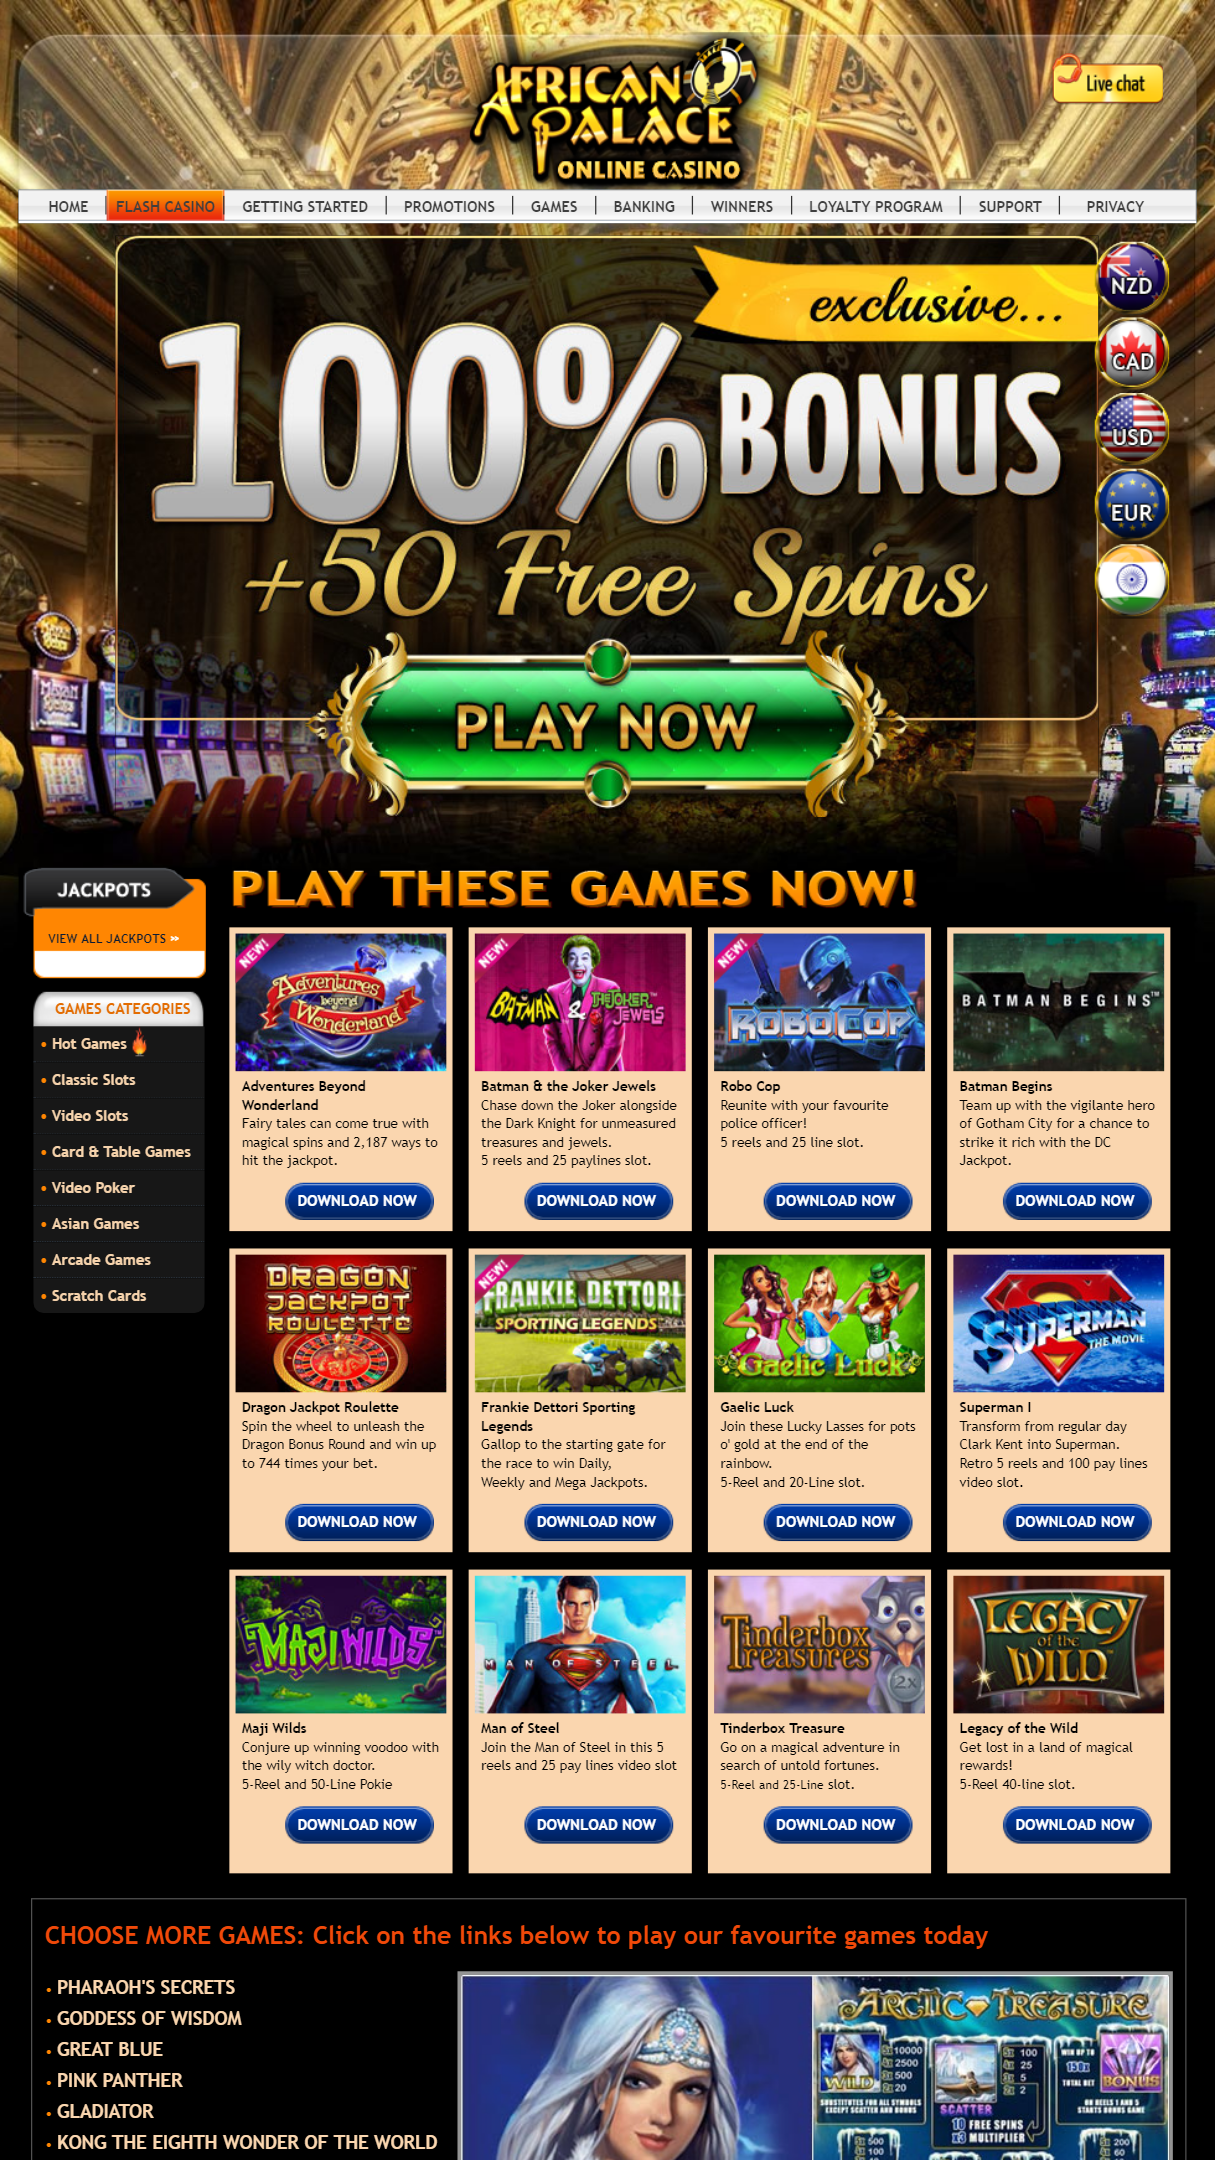 African Palace Casino App Homepage